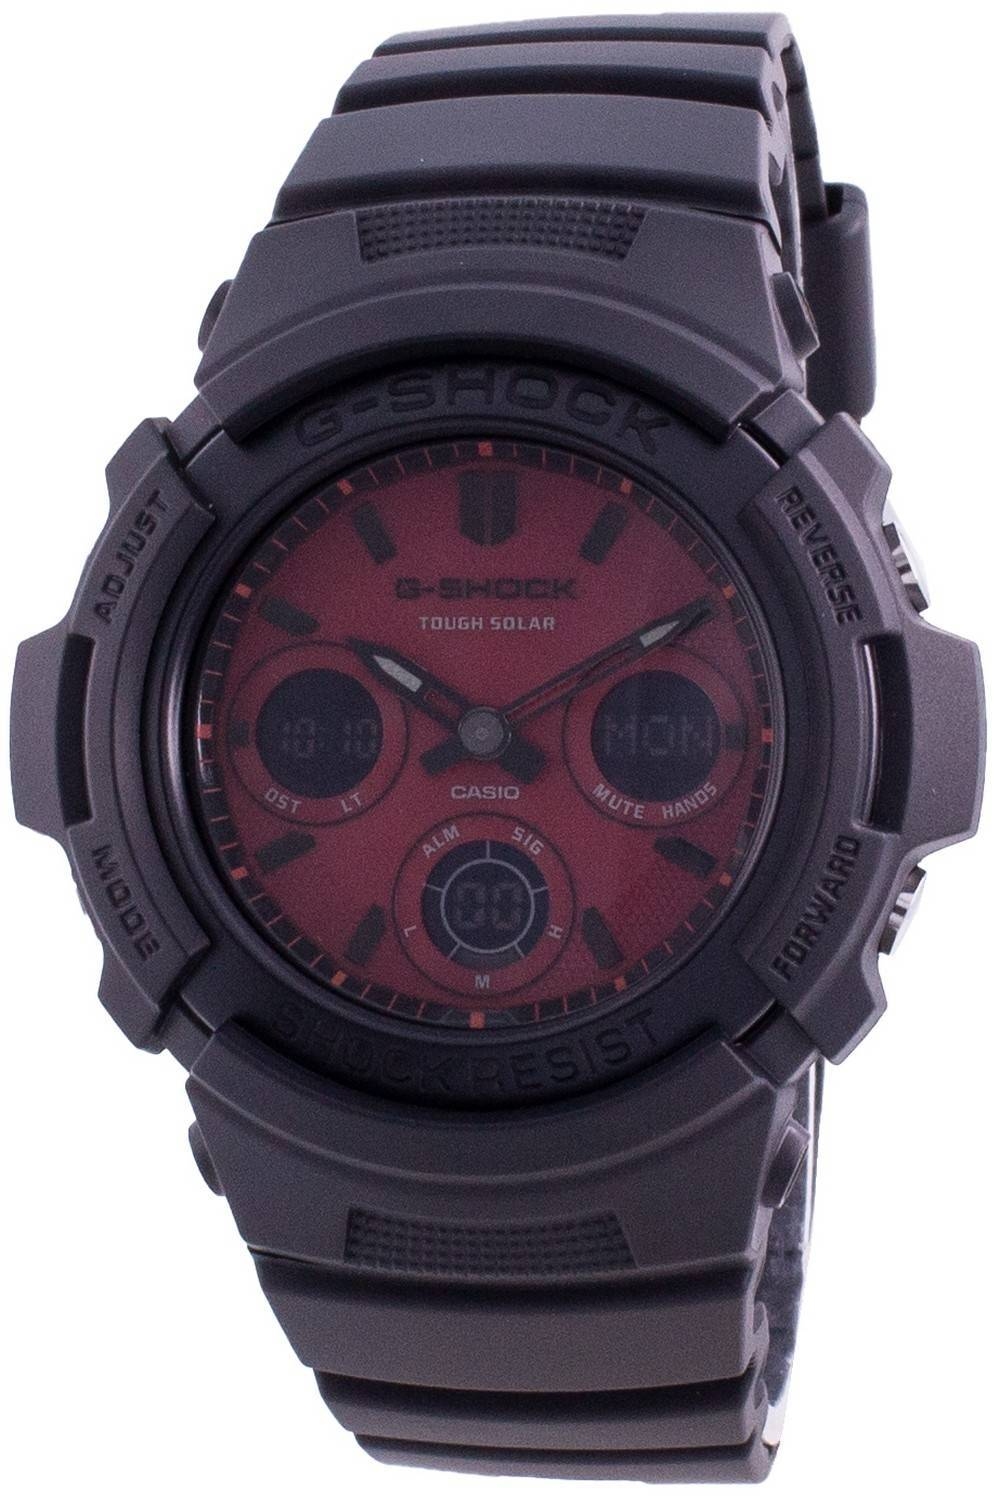 G-Shock Tough Solar Shock Resistant AWR-M100SAR-1A AWRM100SAR-1A 200M Men's Watch